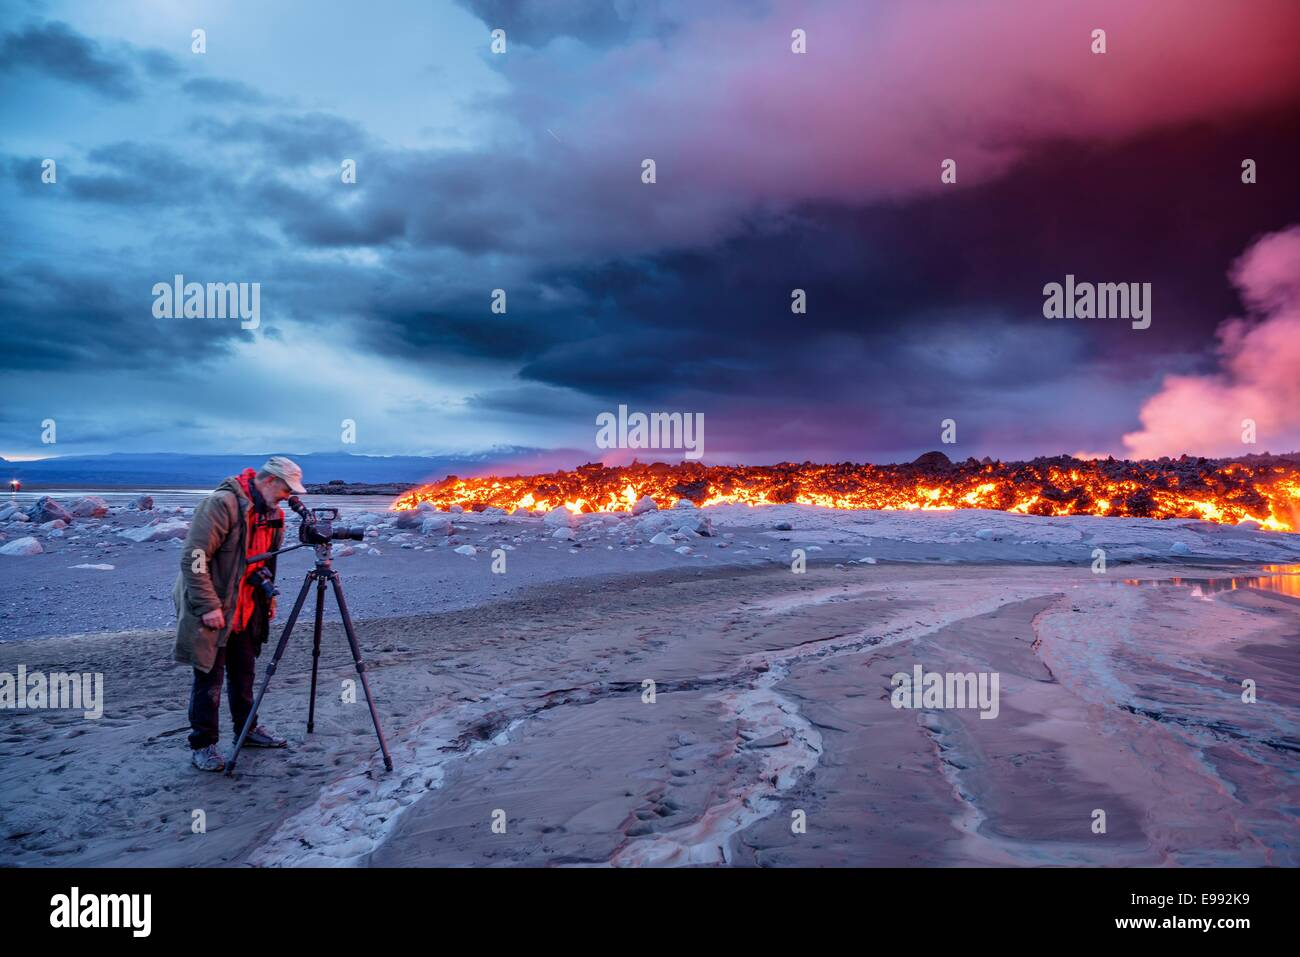 Photographer filming the volcano eruption at the Holuhraun Fissure, near the Bardarbunga Volcano, Iceland. - Stock Image